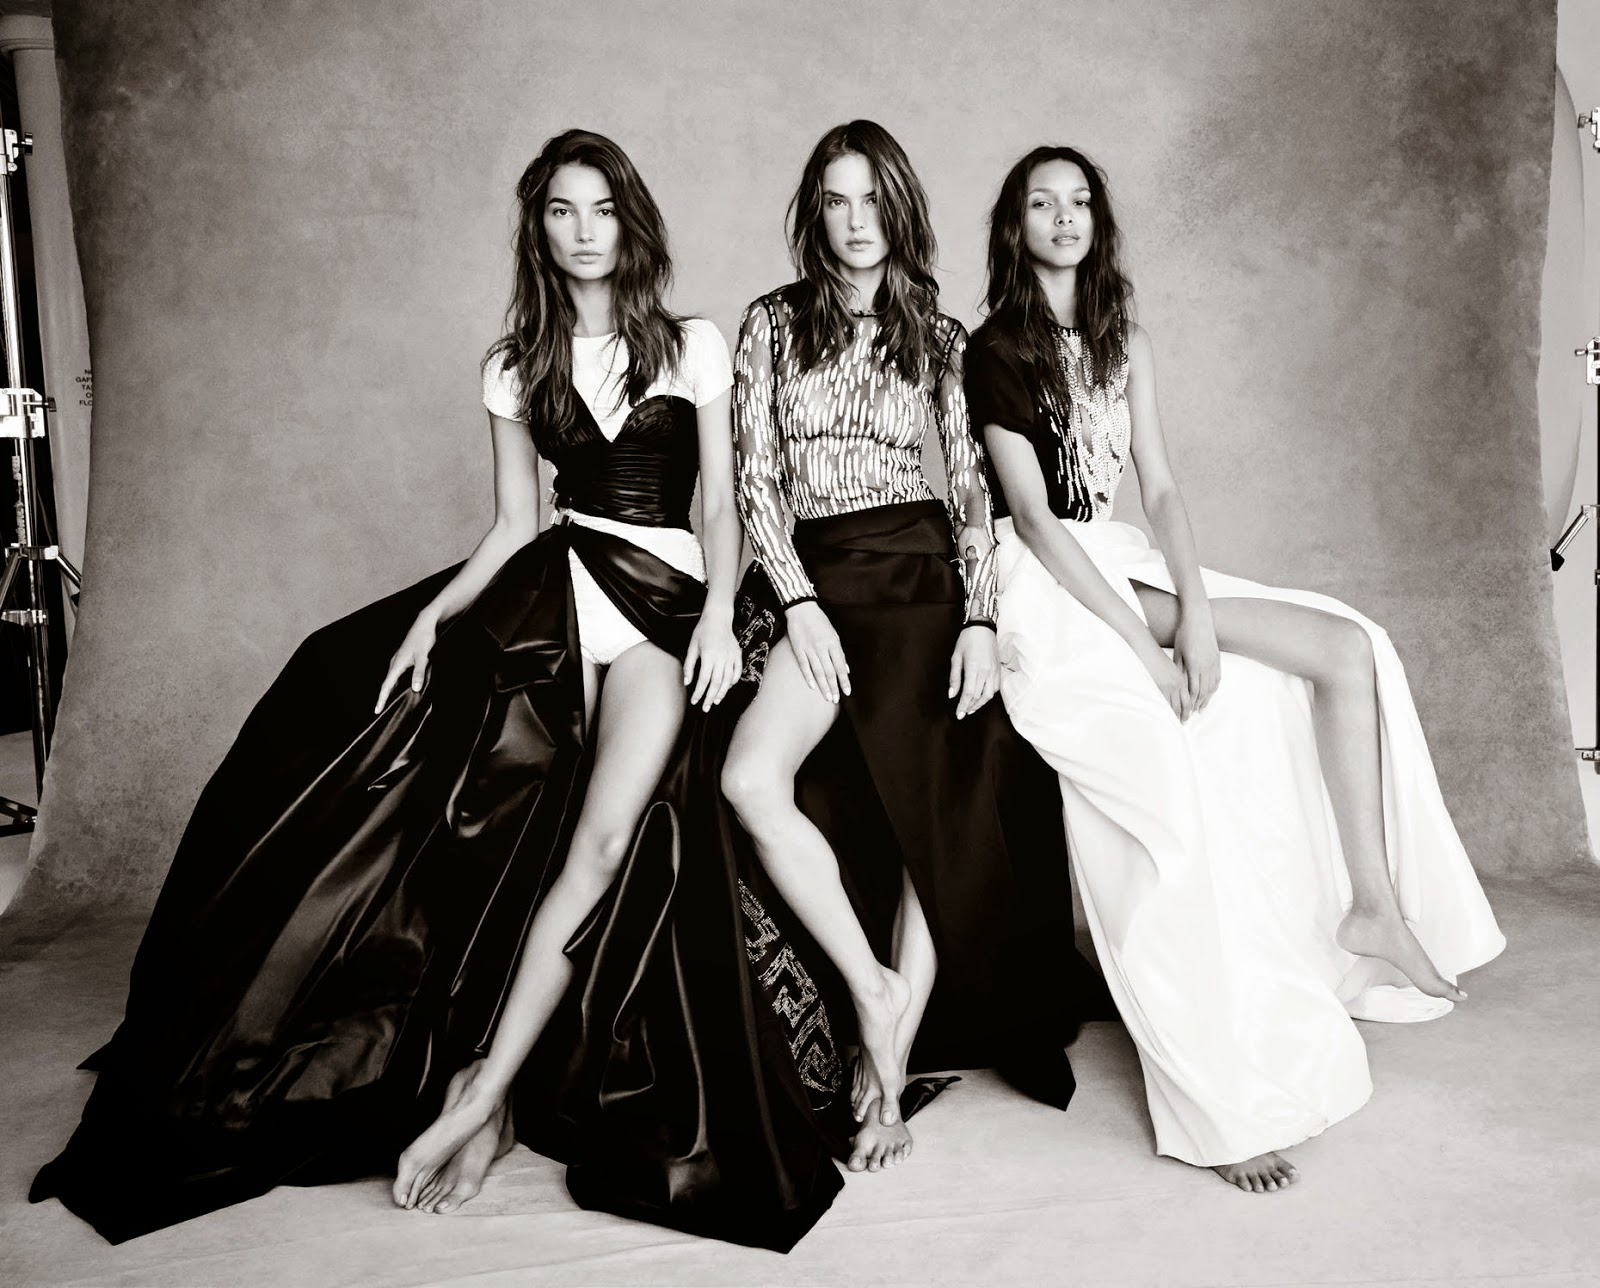 Victoria's Secret Angels dress up in couture for a photoshoot for Vogue UK November 2014